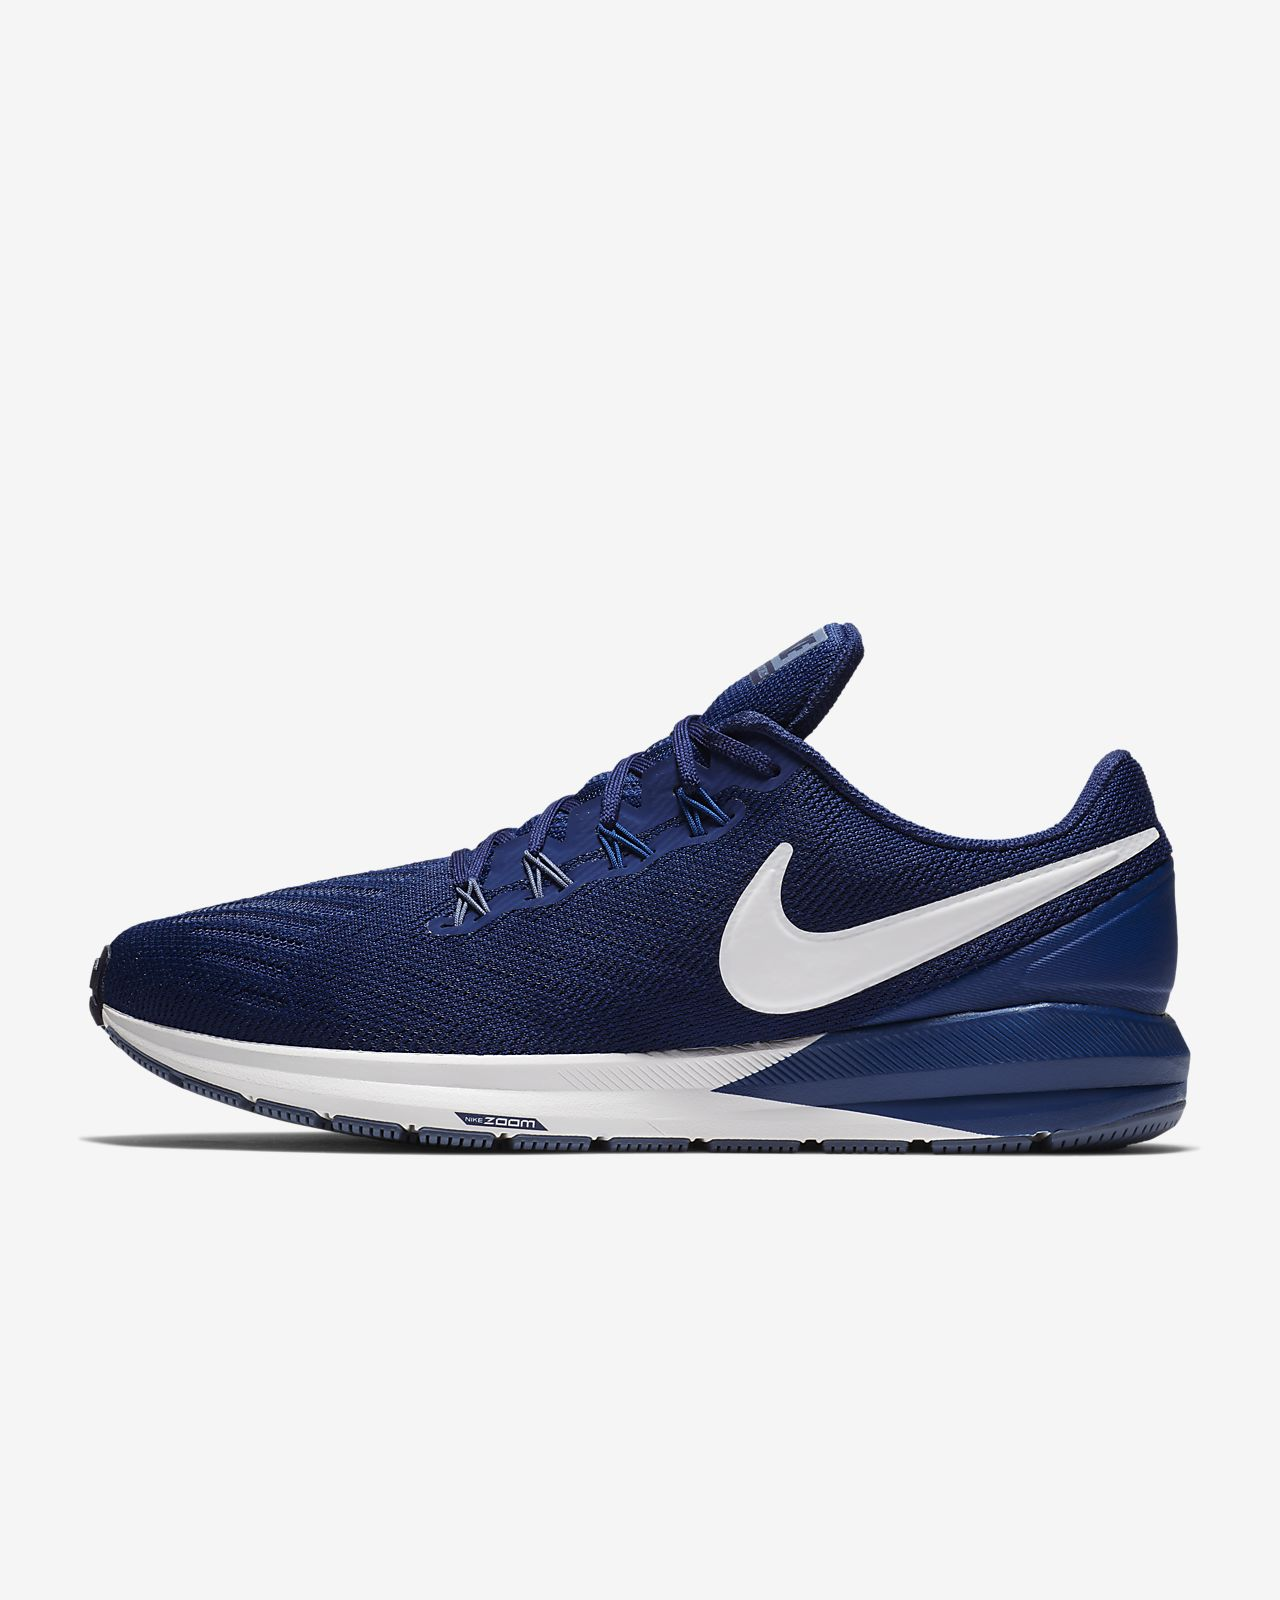 sports shoes 2b97b 738be ... Chaussure de running Nike Air Zoom Structure 22 pour Homme